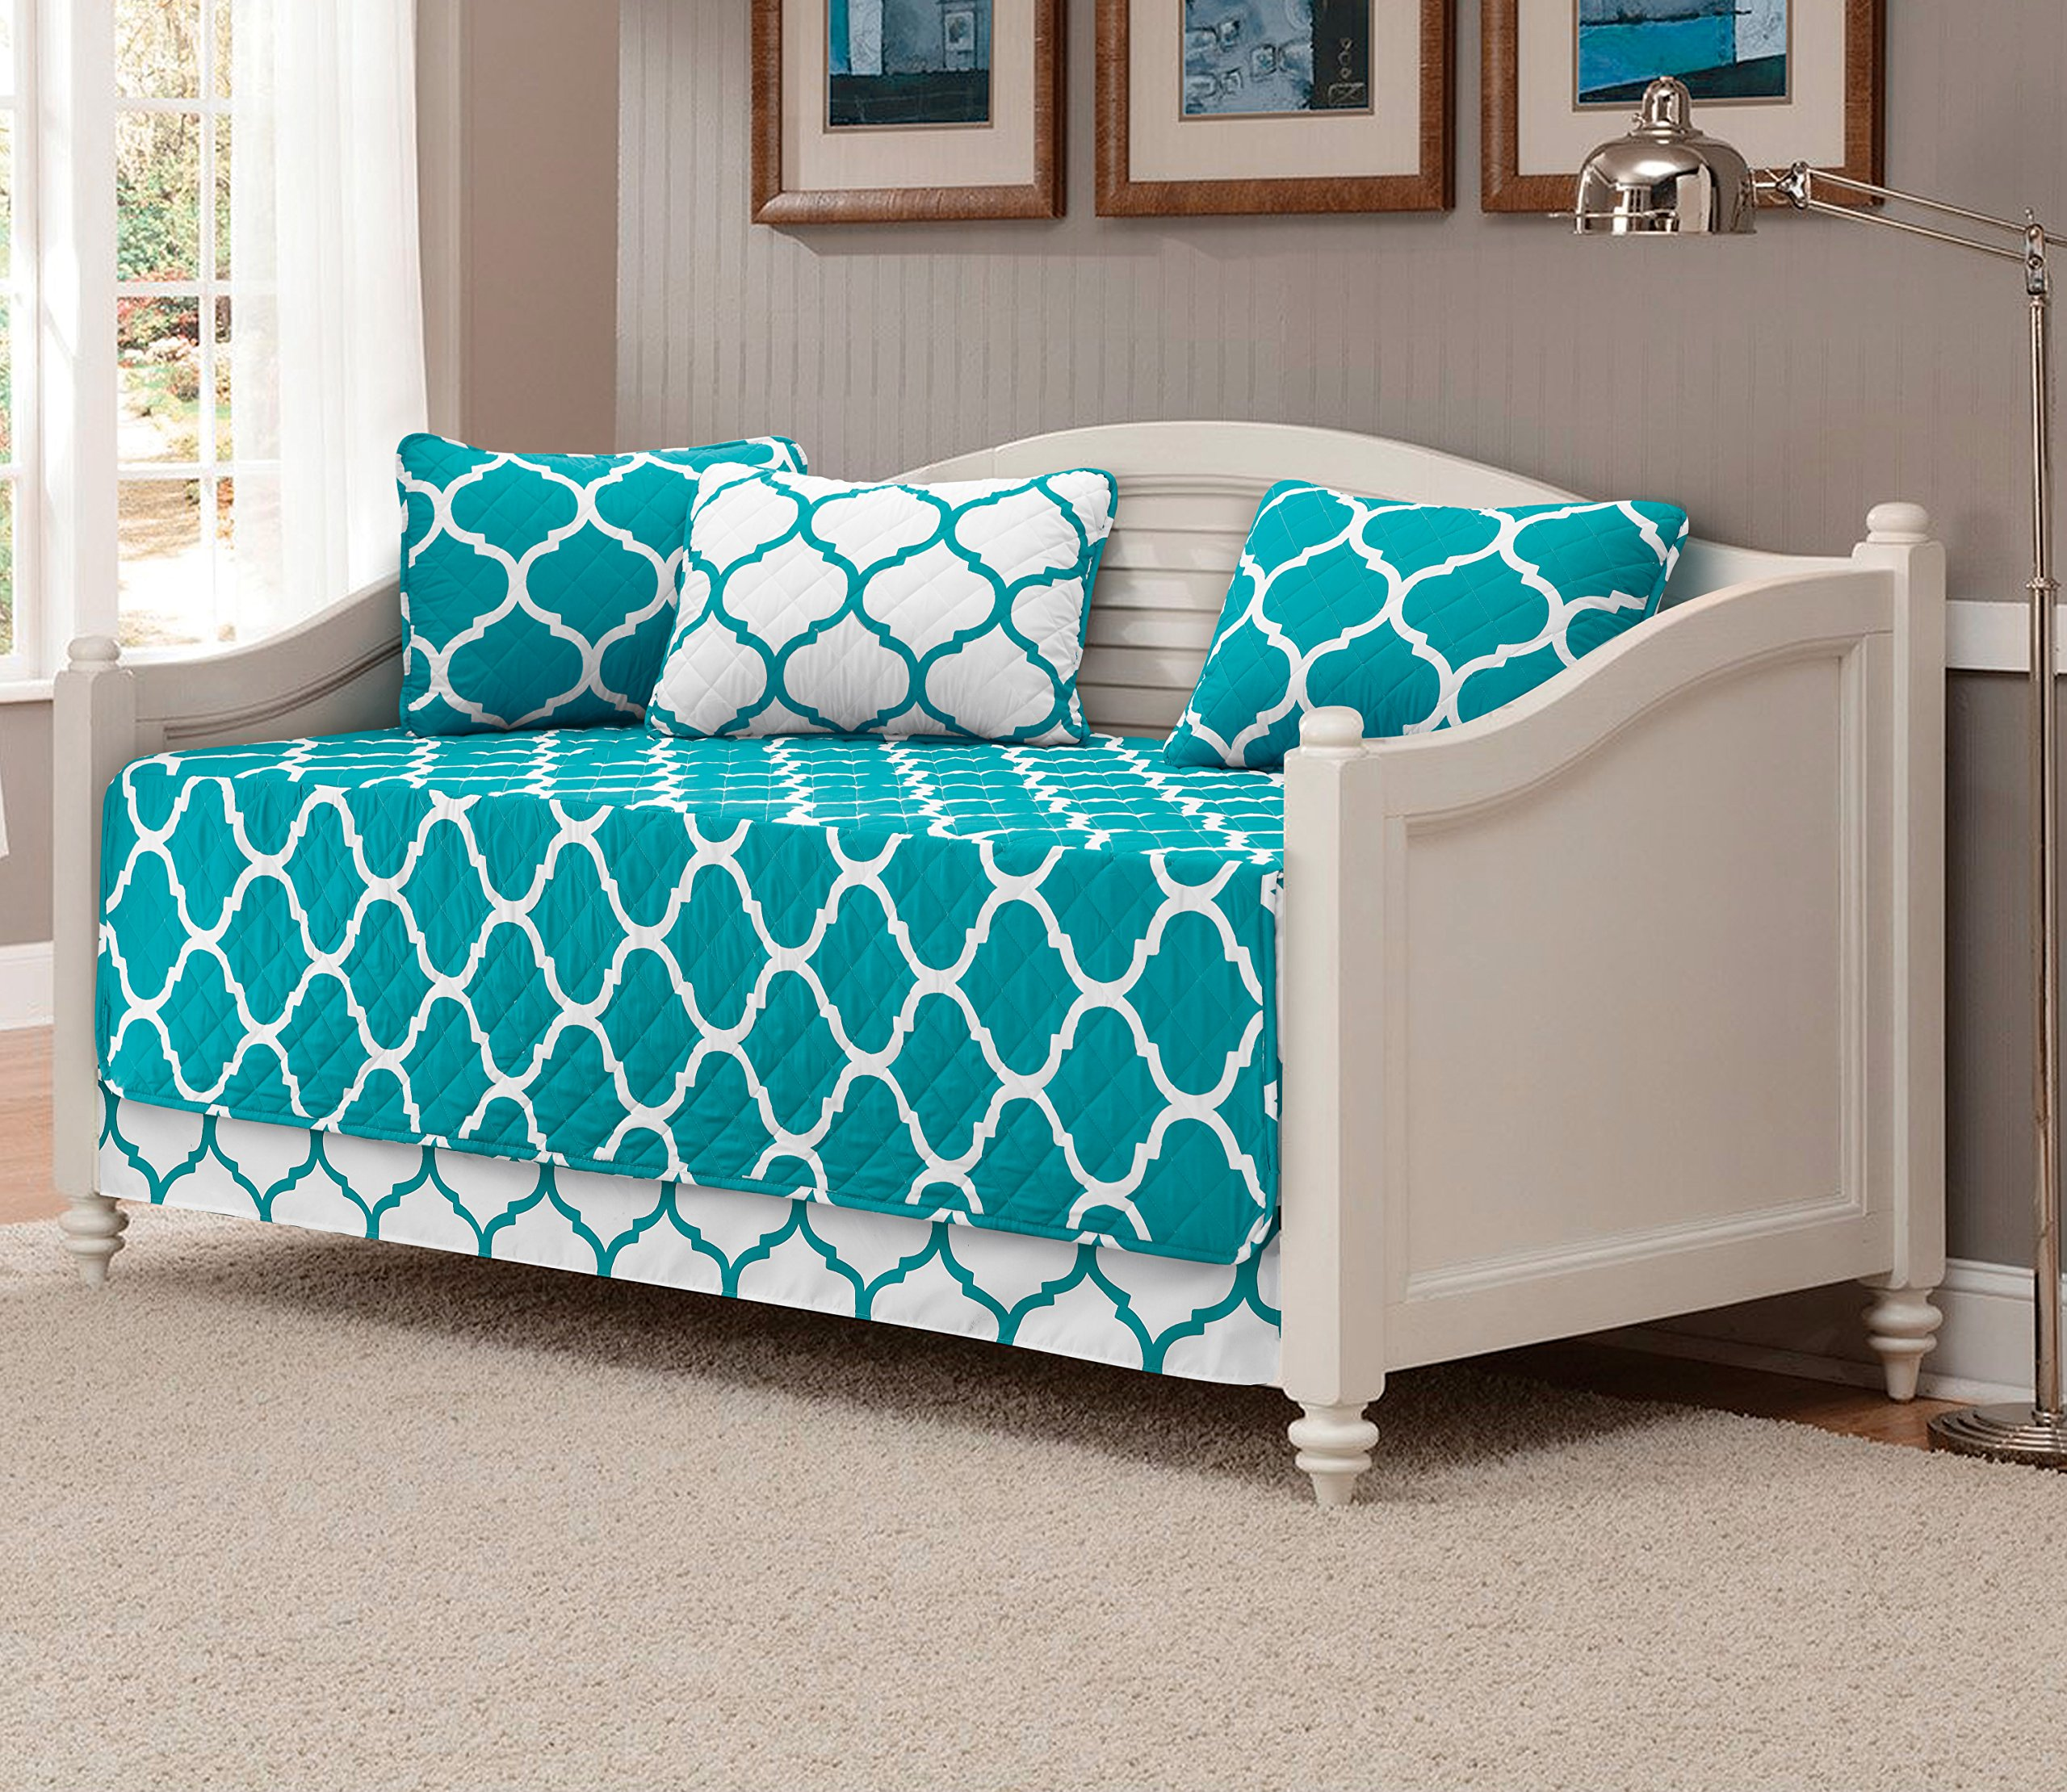 Mk Collection 5pc Modern Elegant Reversible Bedspread DayBed Cover Set Geometric Contemporary Pattern Turquoise/White Quilted New